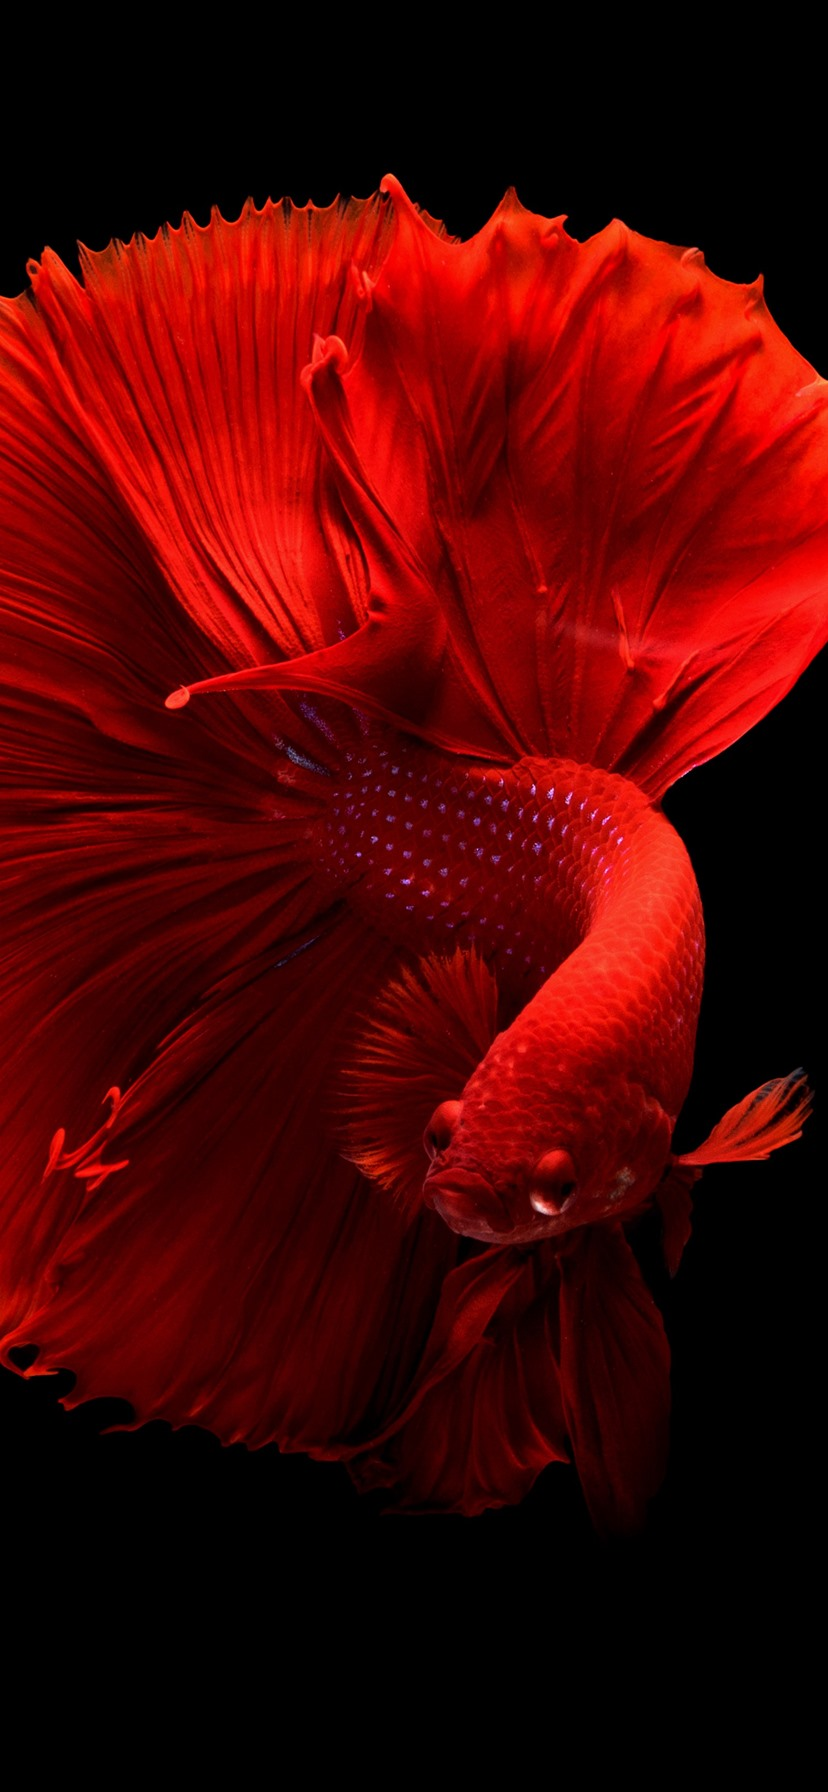 Beautiful Red Fish Tail Black Background 1242x2688 Iphone 11 Pro Xs Max Wallpaper Background Picture Image